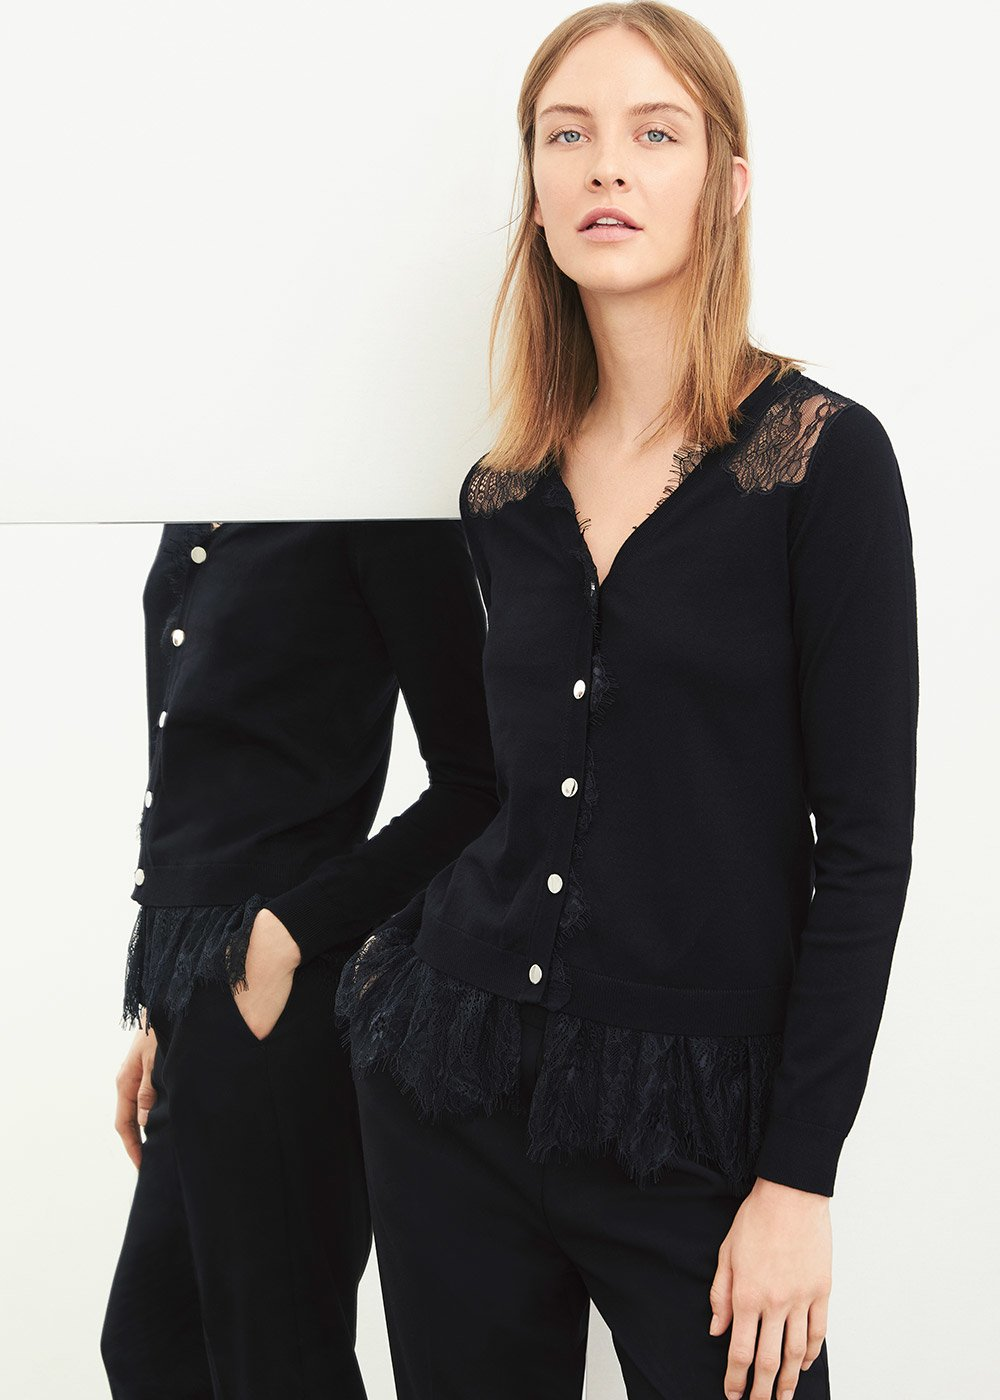 Camel cardigan with scalloped lace - Black - Woman